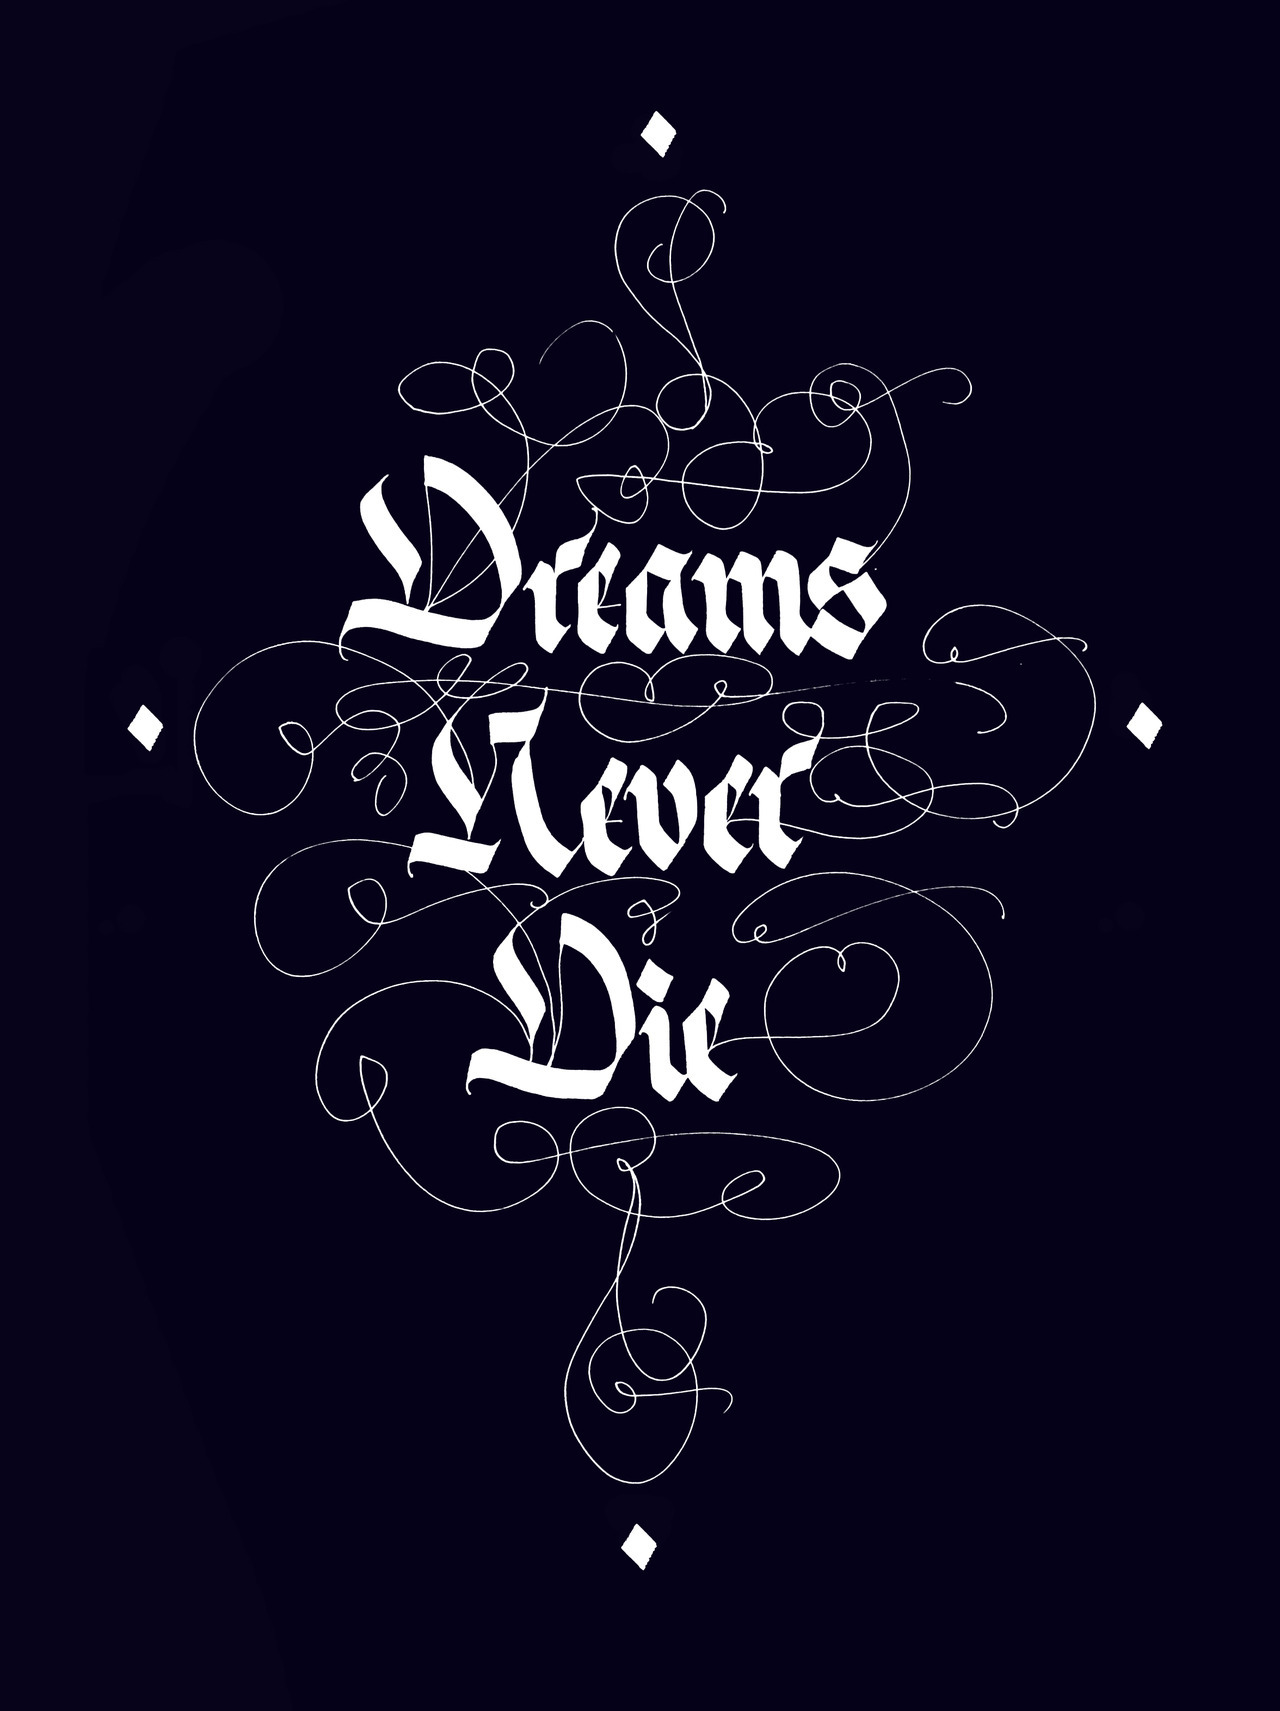 Calligraphi.ca - Dreams Never Die (Tribute to New Order) - Pilot Parallel Pen (Inverted) - Misha Karagezyan